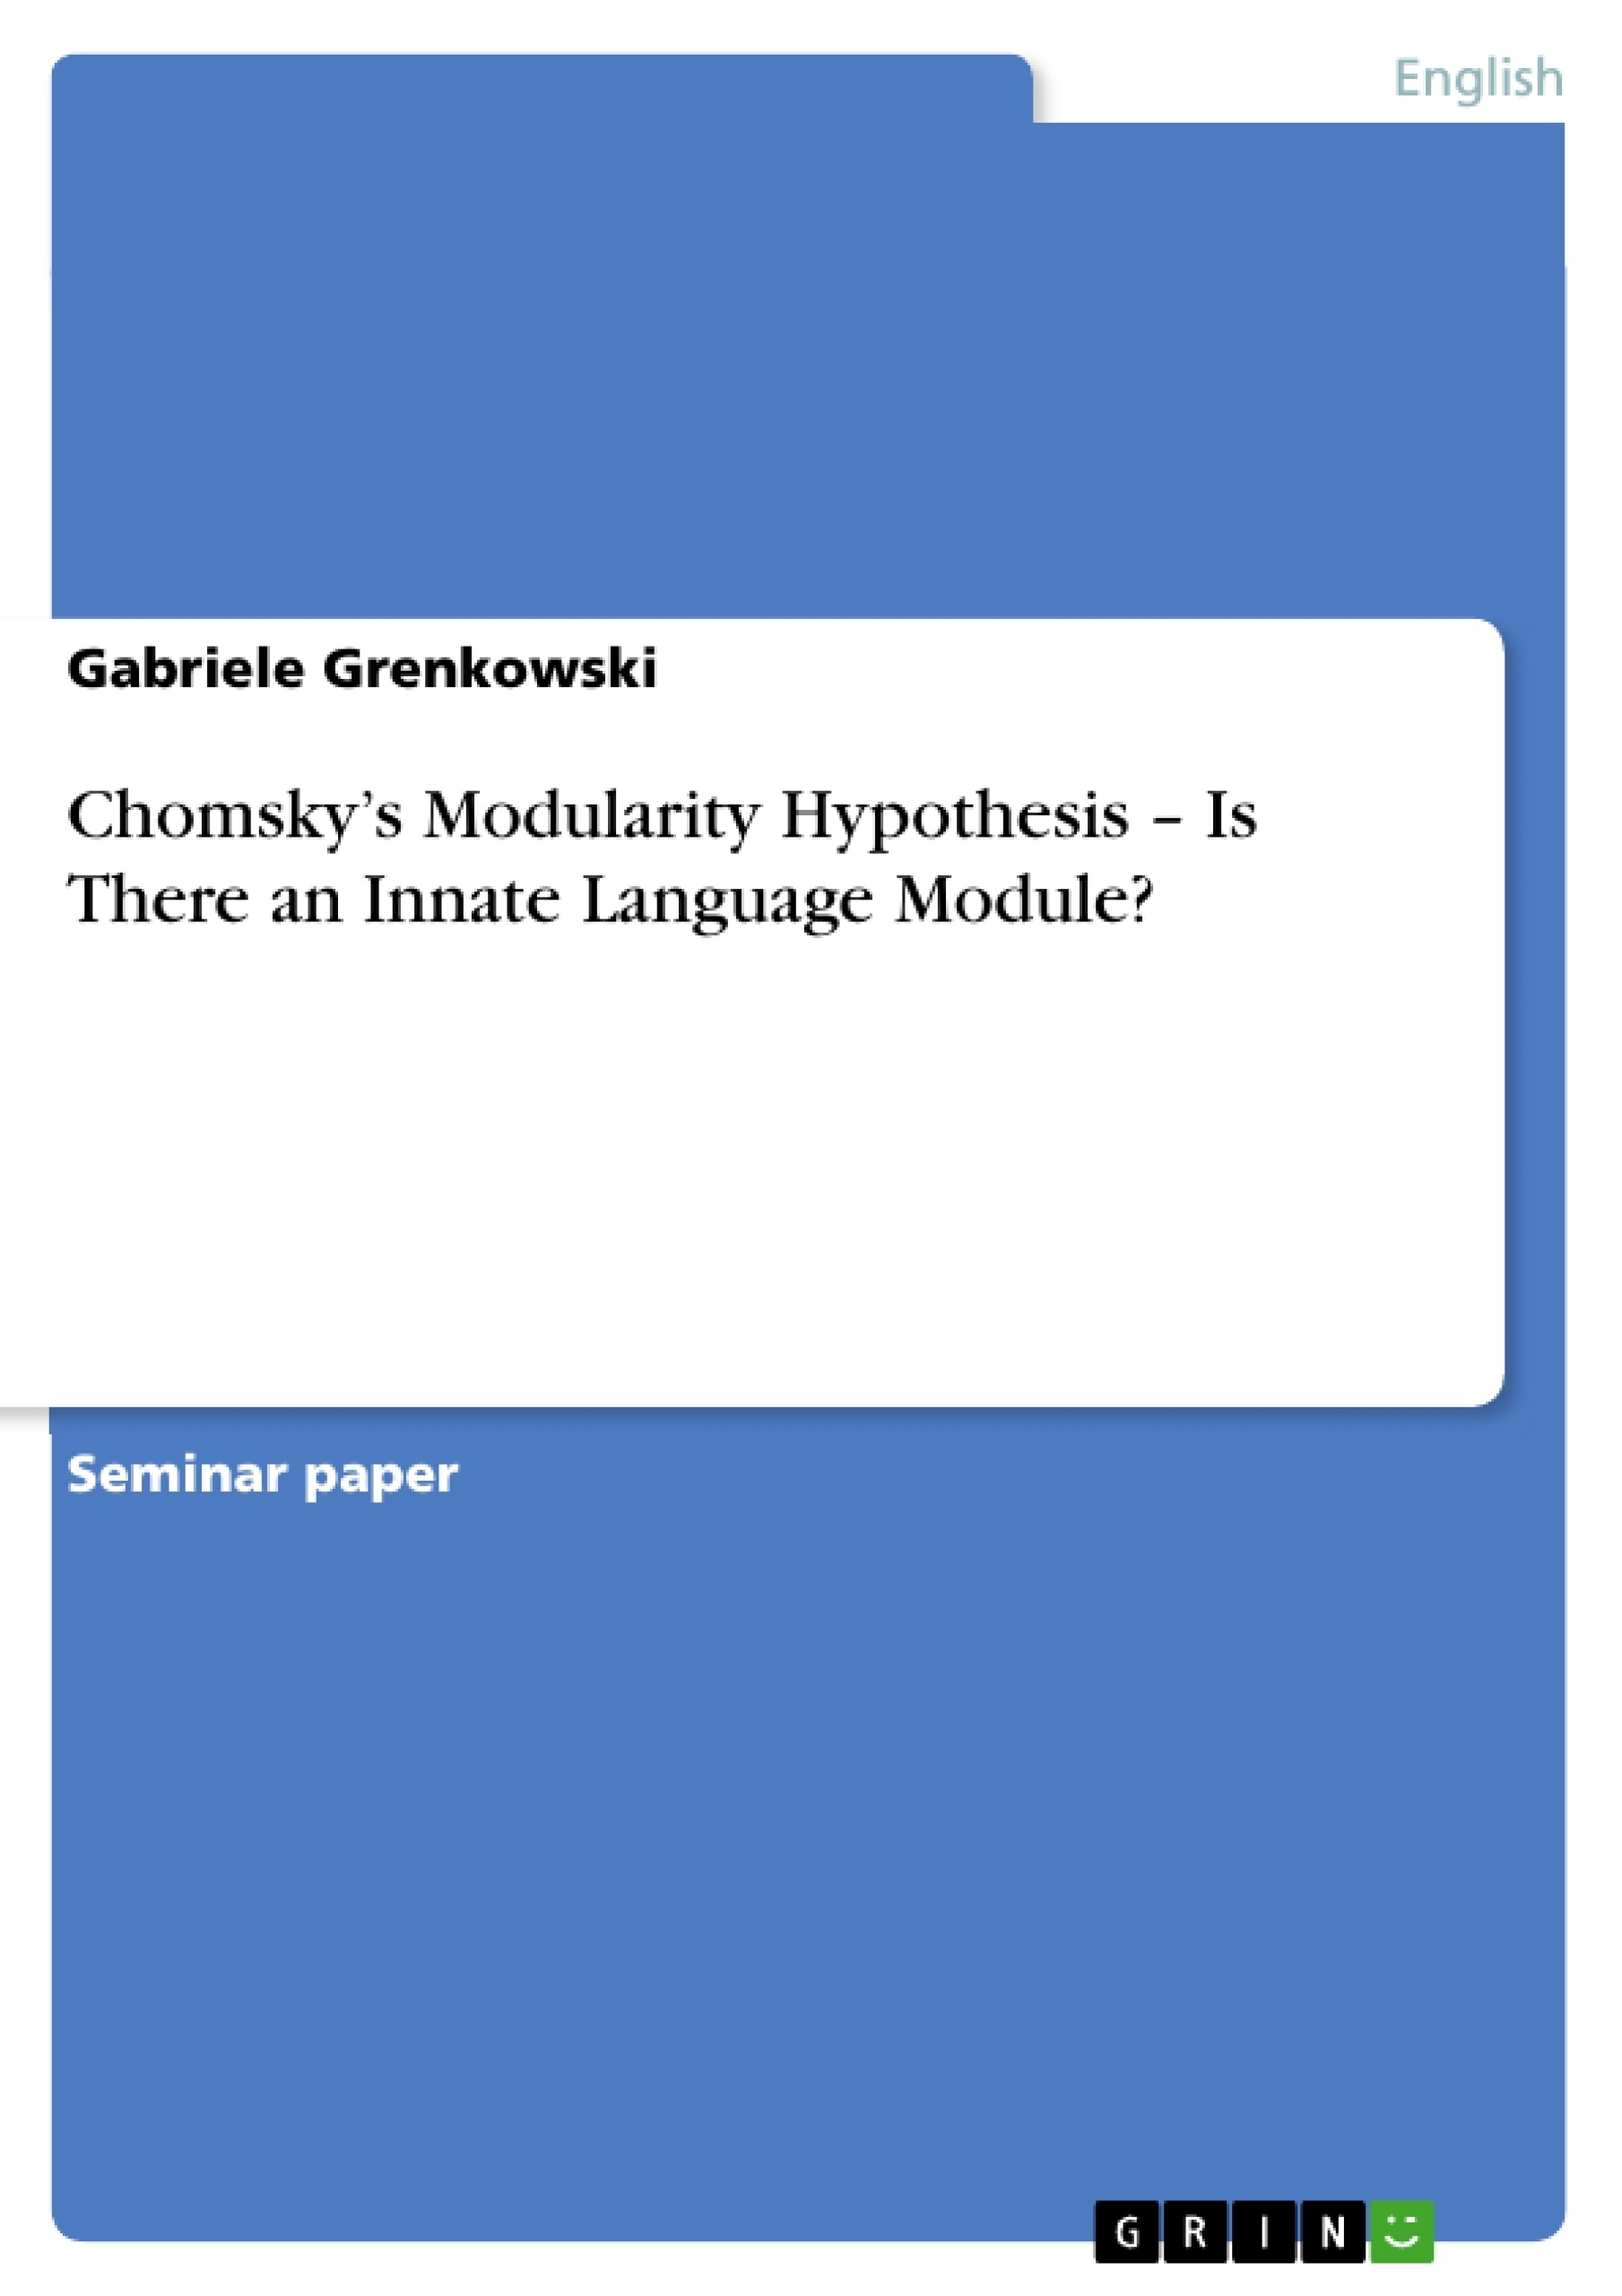 Title: Chomsky's Modularity Hypothesis – Is There an Innate Language Module?